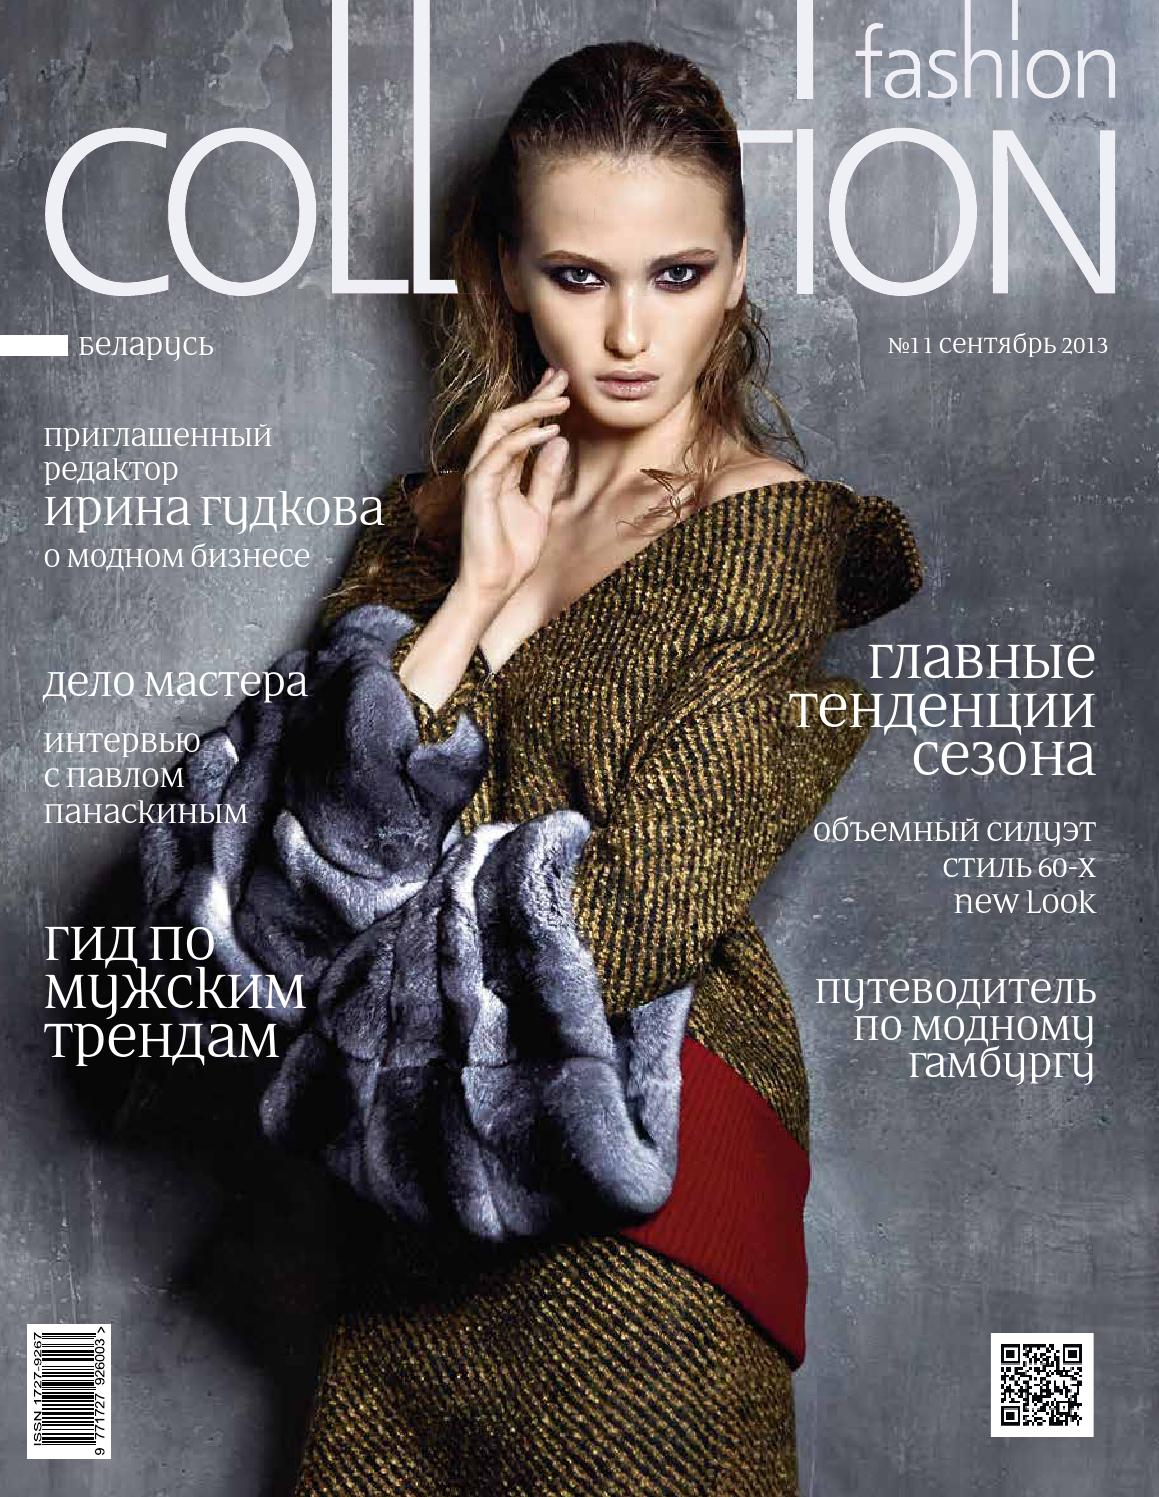 a6eea6cdd88e Fashion Collection Belarus  11 (sept. 2013) by Fcollection Belarus - issuu